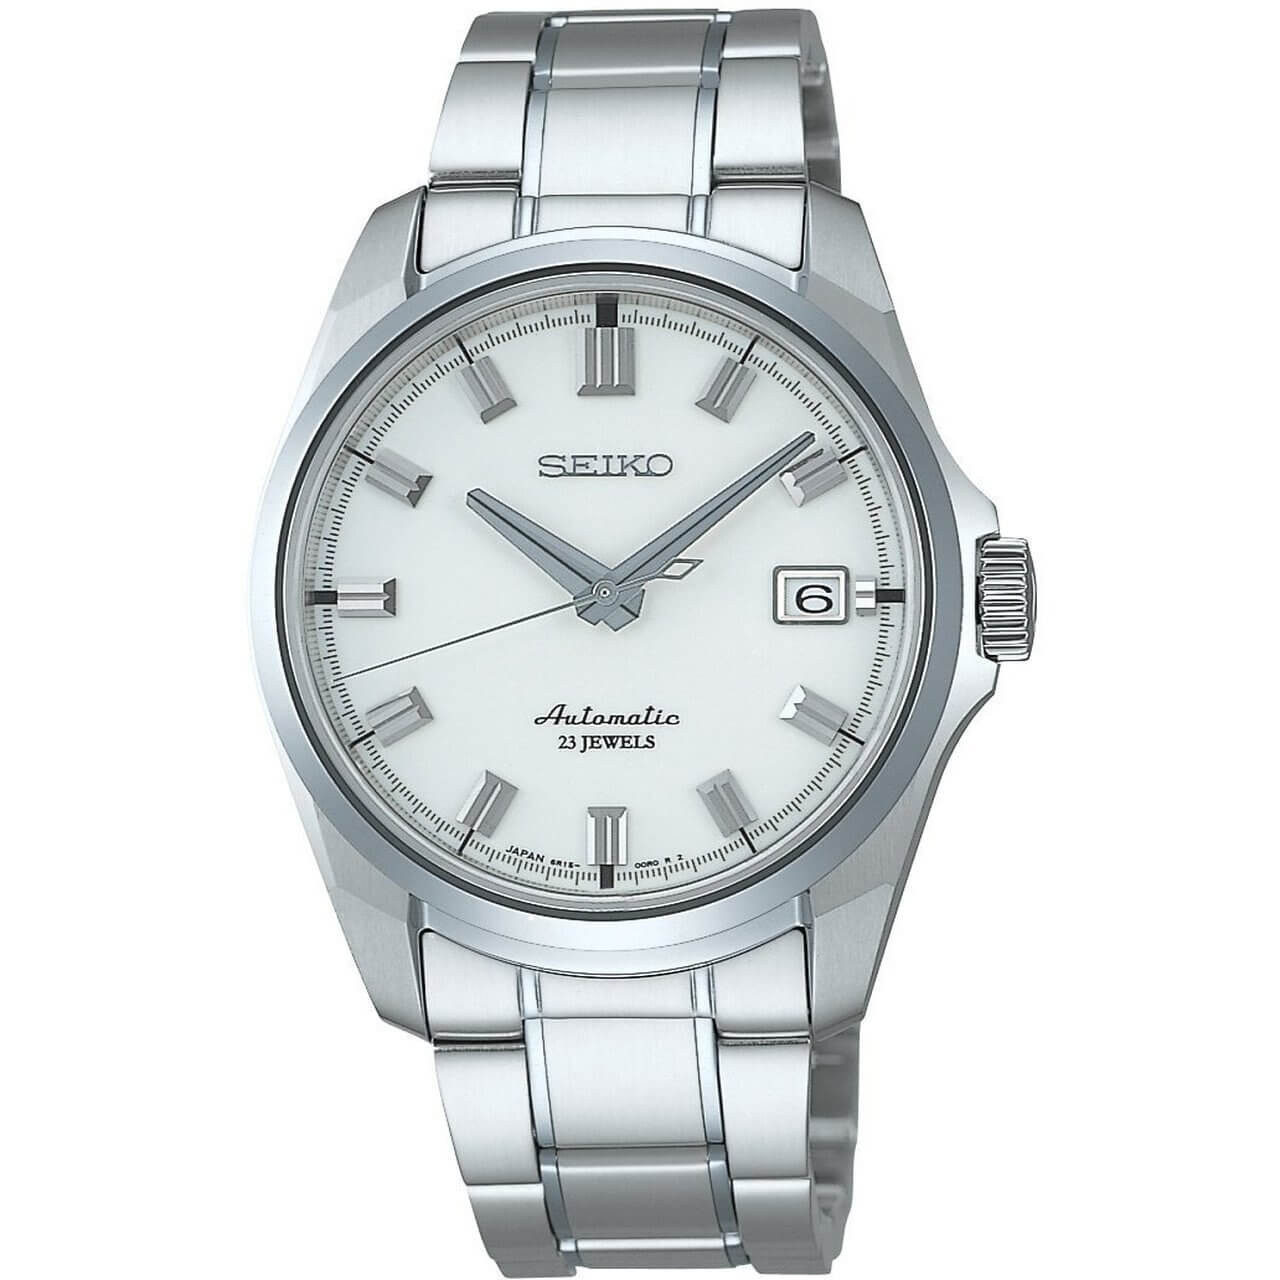 Seiko SARB023 Mechanical Automatic